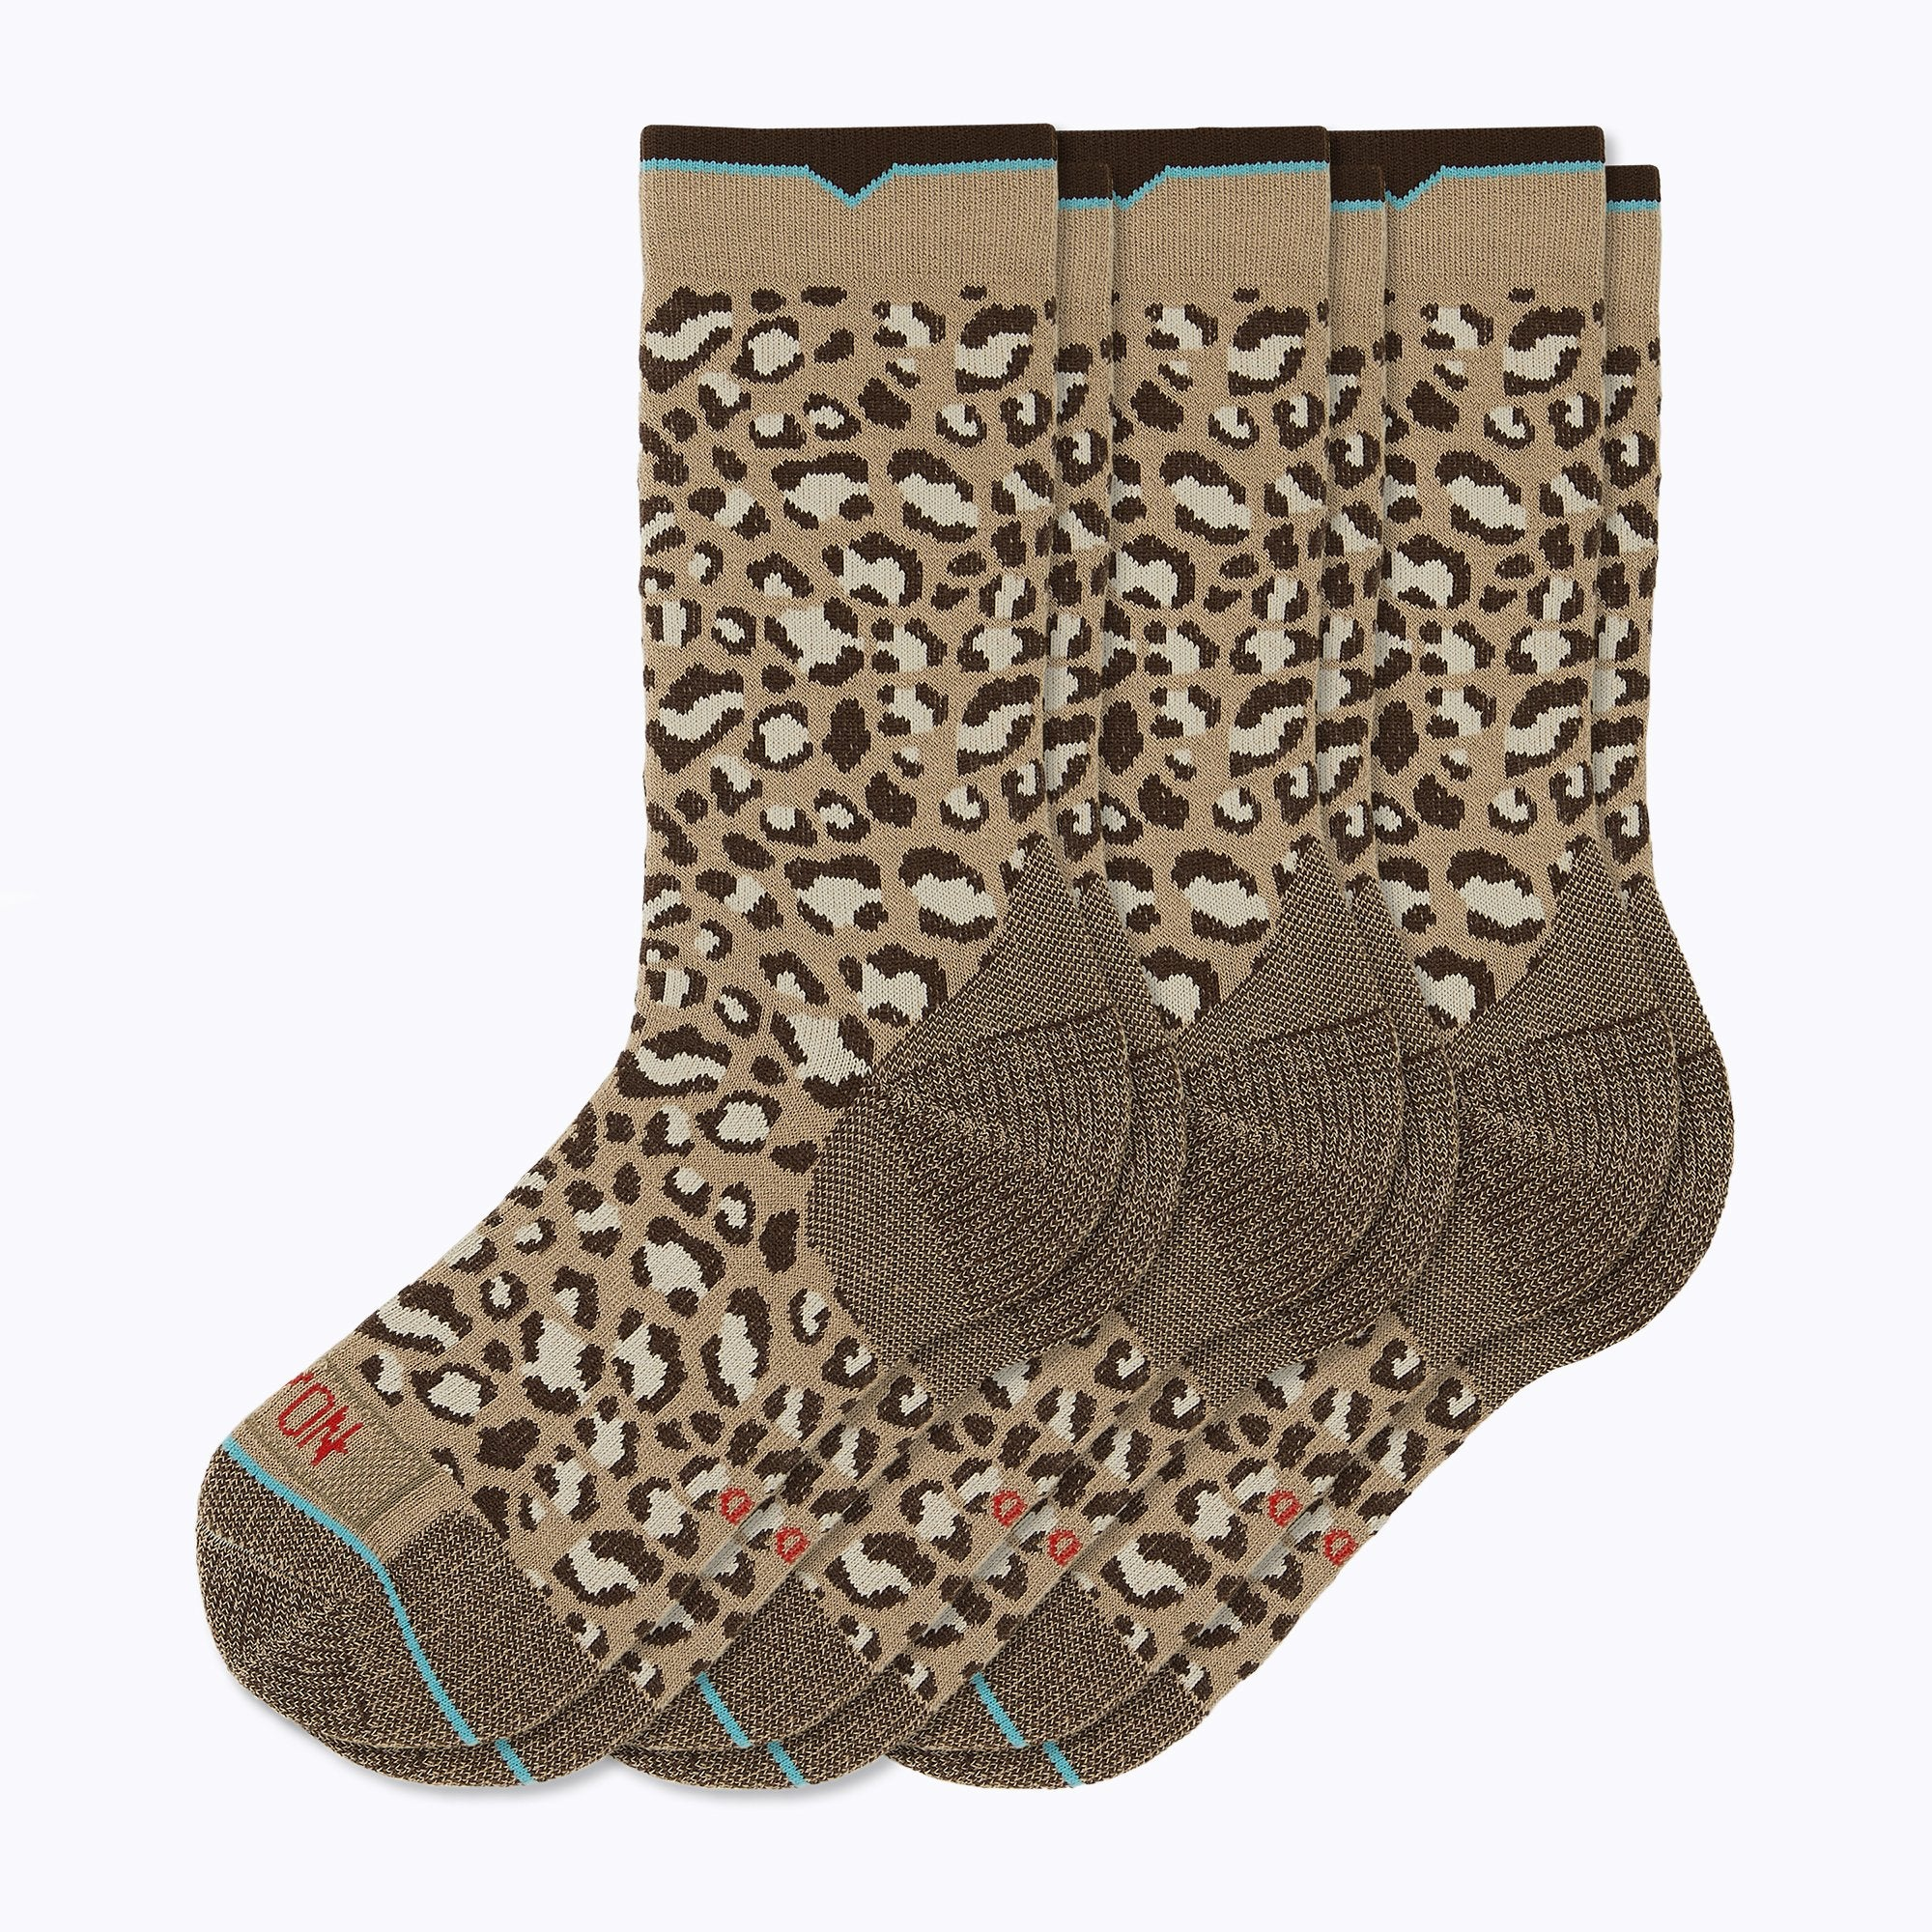 Leopard 3 Pack Women's Crew Socks - Sand by Canyon Socks